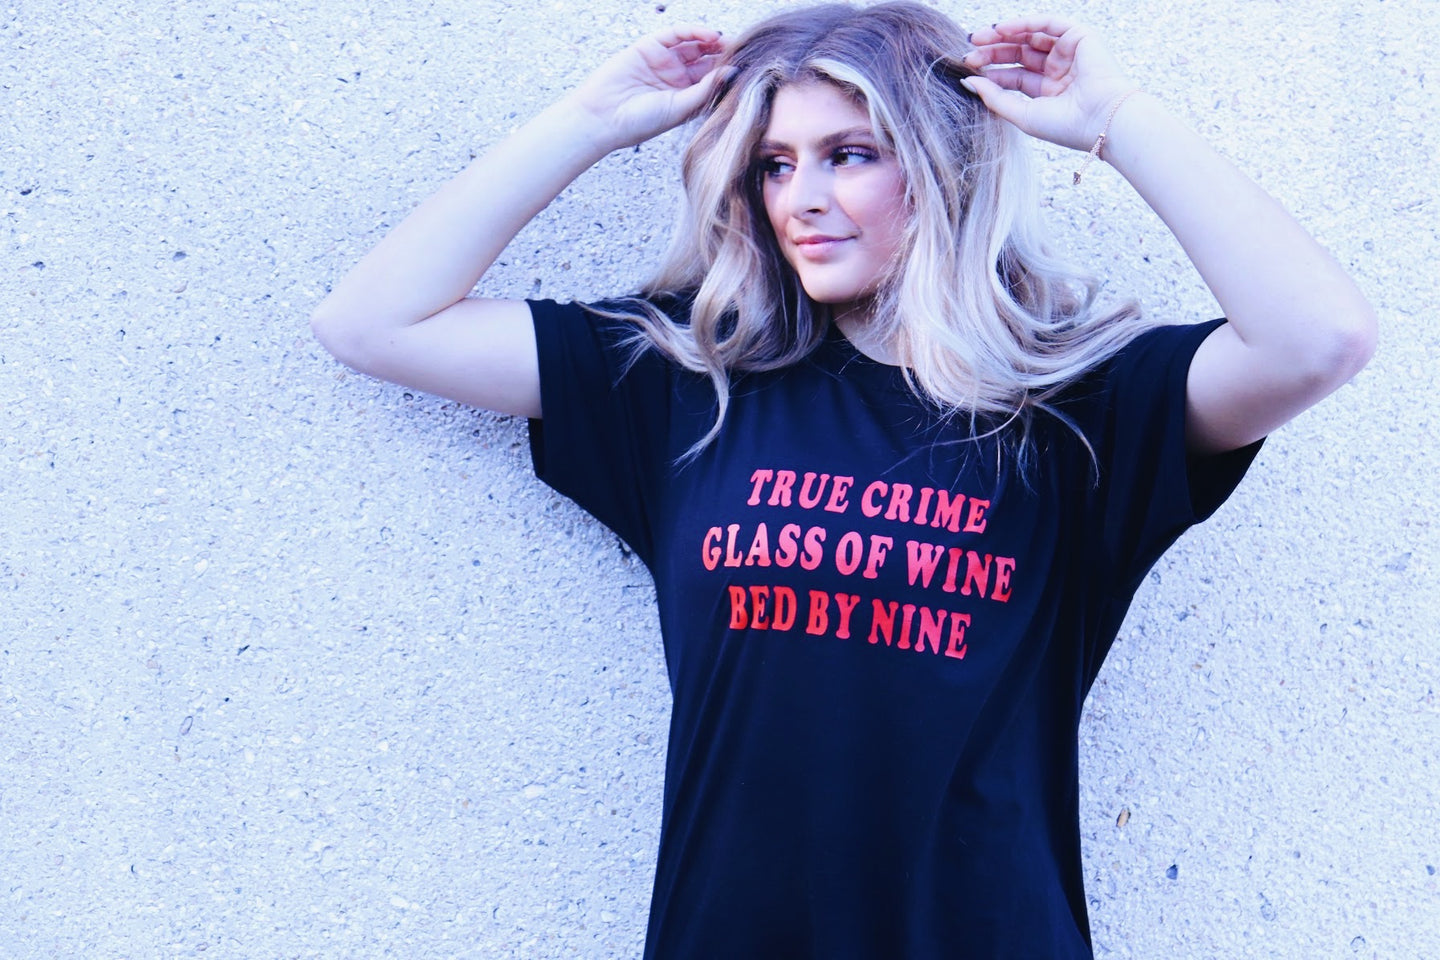 True Crime, Glass of Wine, Bed by Nine Tee